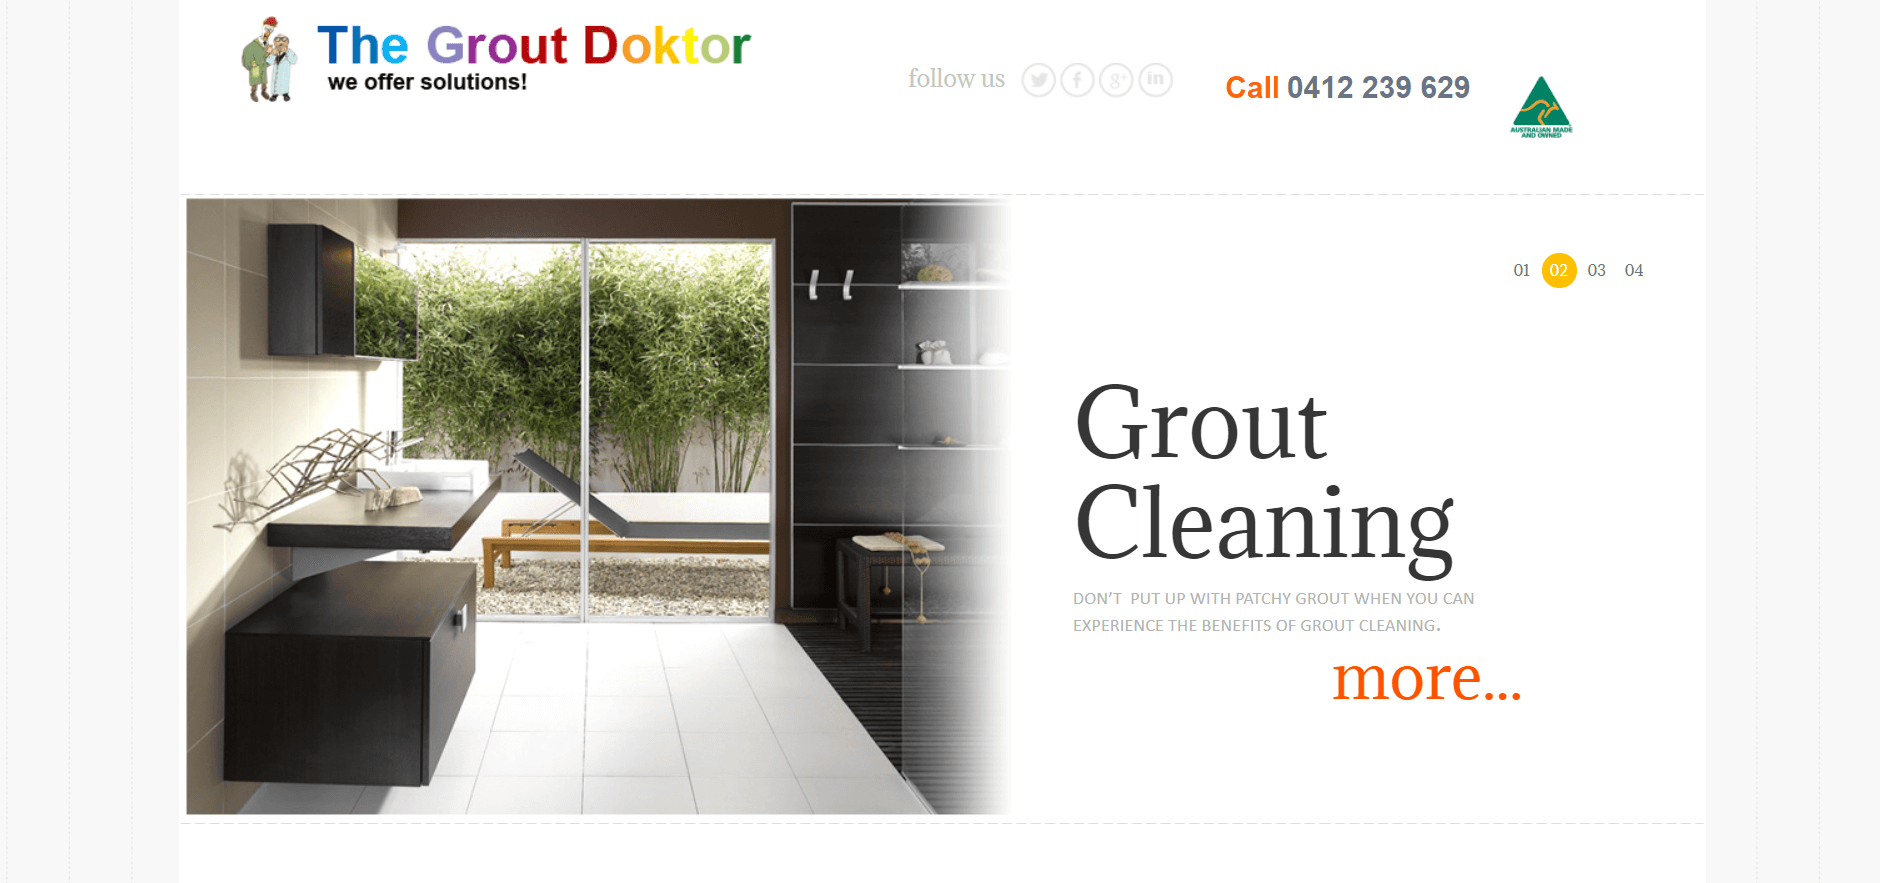 the grout doktor